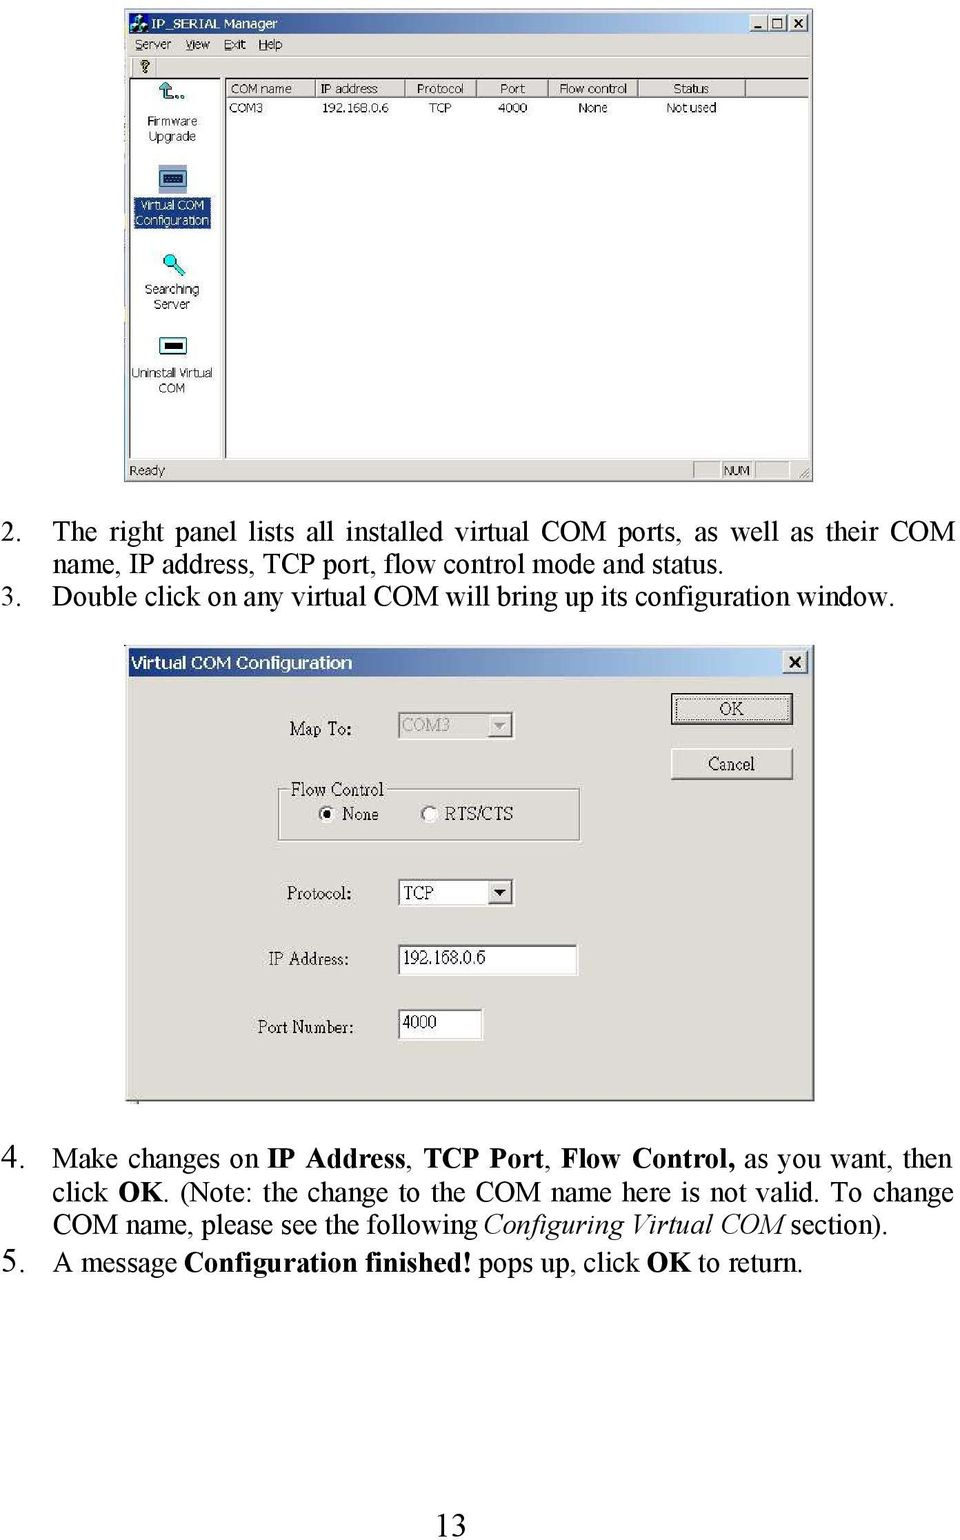 Make changes on IP Address, TCP Port, Flow Control, as you want, then 5. click OK.